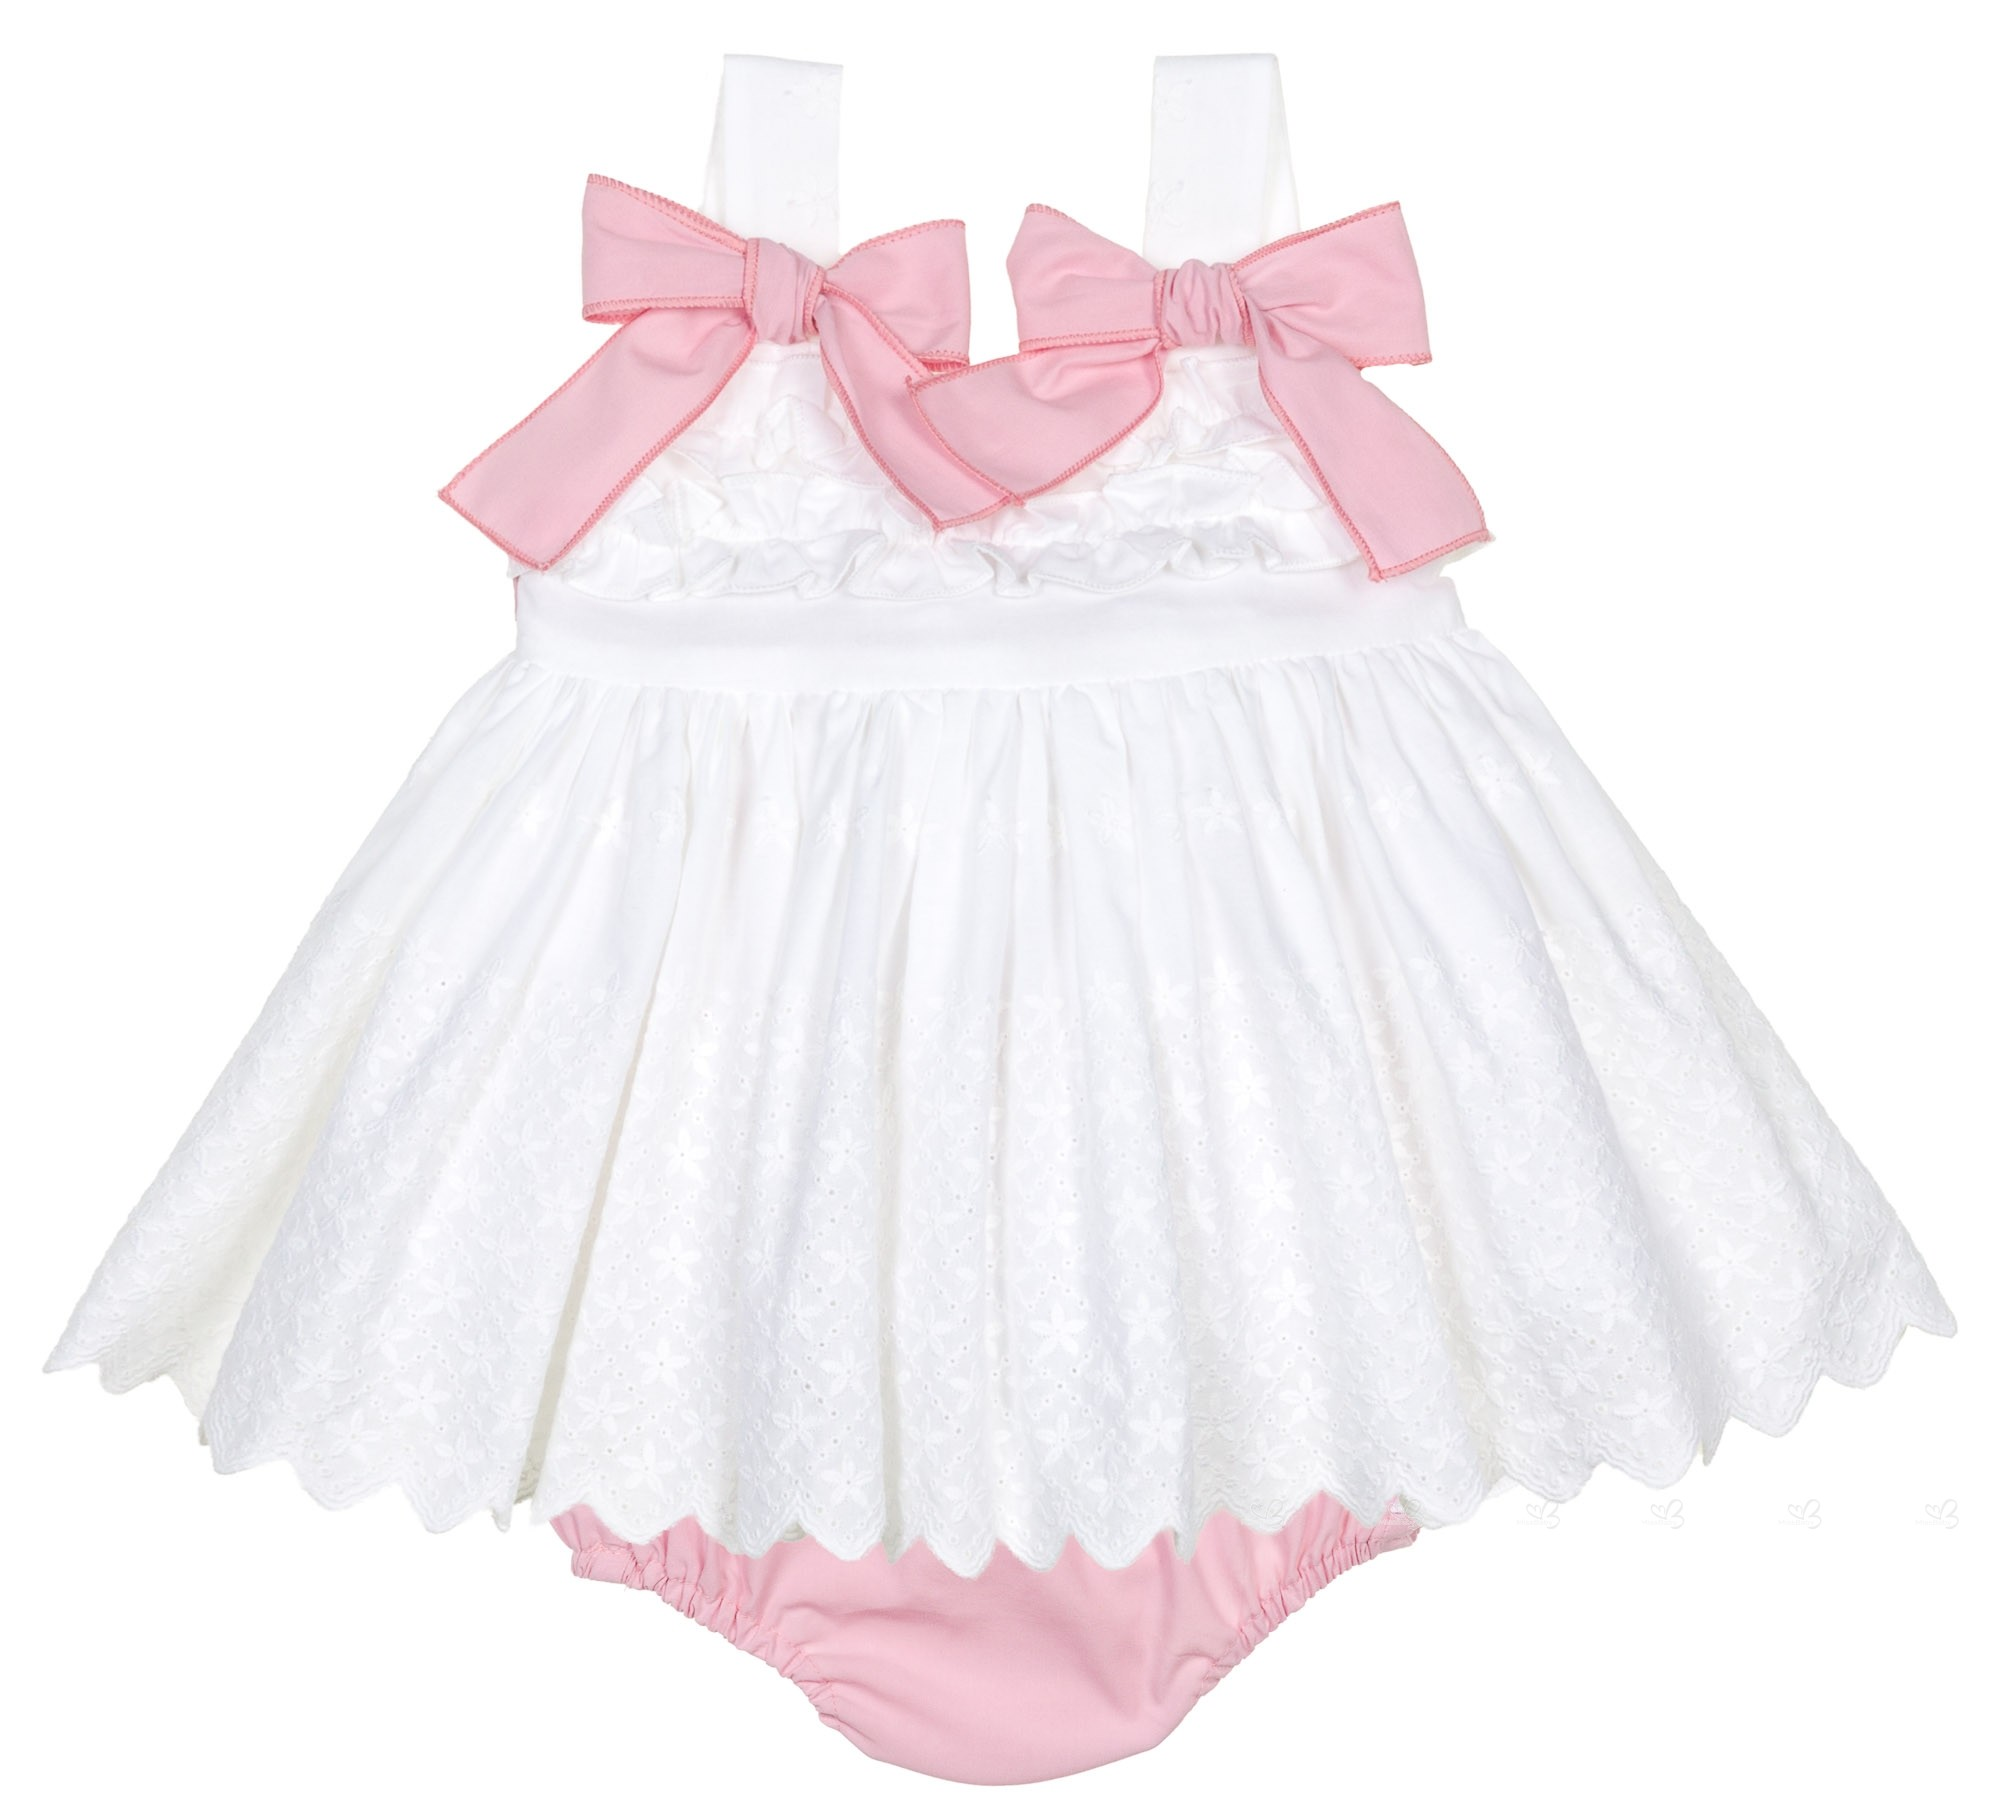 e332778a8795 Home  Baby Girls White   Pink Embroidered Dress Set. Lappepa Moda Infantil  Conjunto Niña Vestido Braguita Blanco Rosa ...